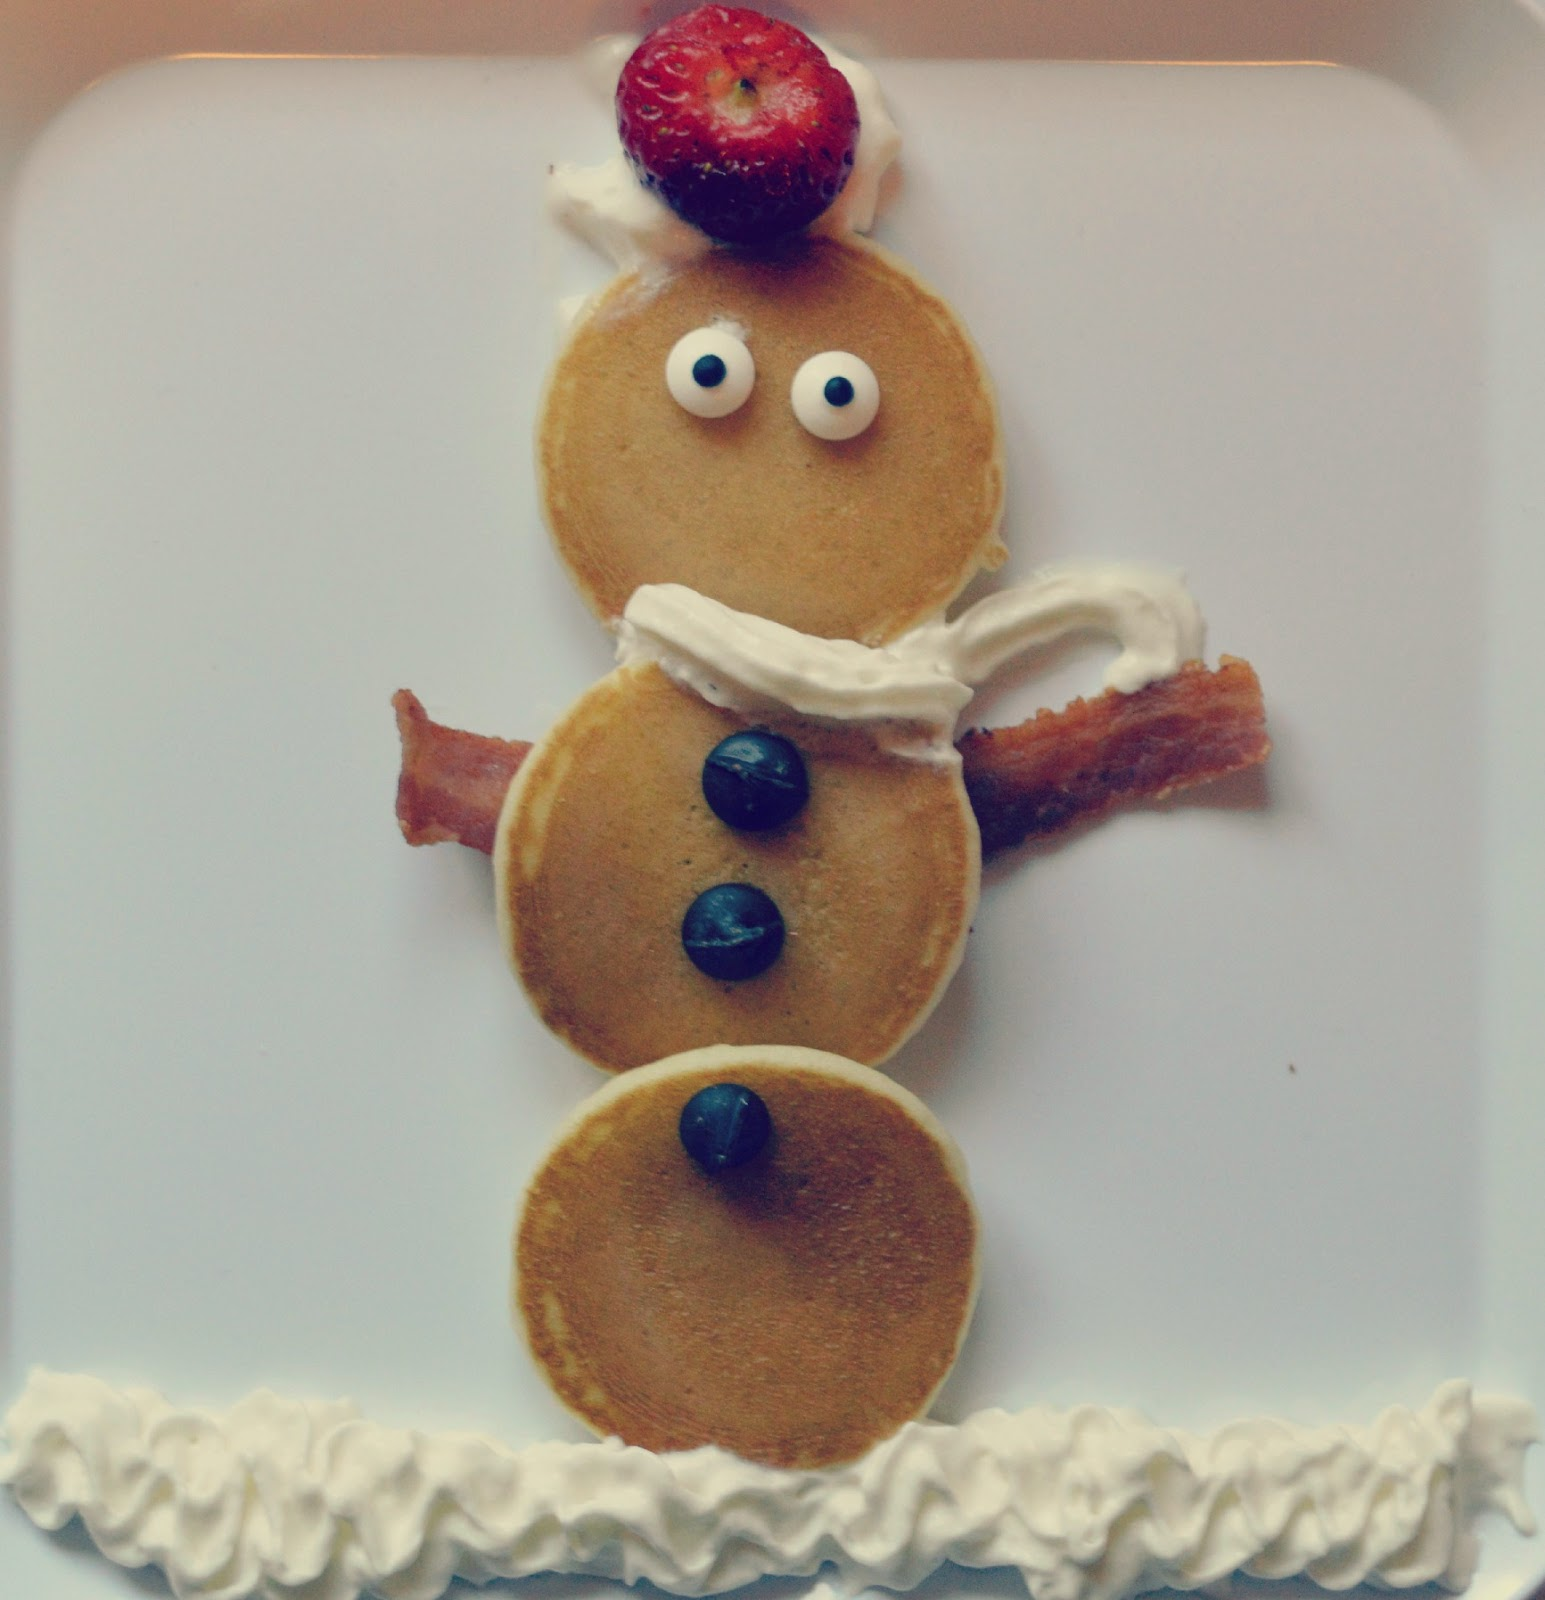 Fun Kid's Christmas Breakfast Ideas - Snowman Pancakes